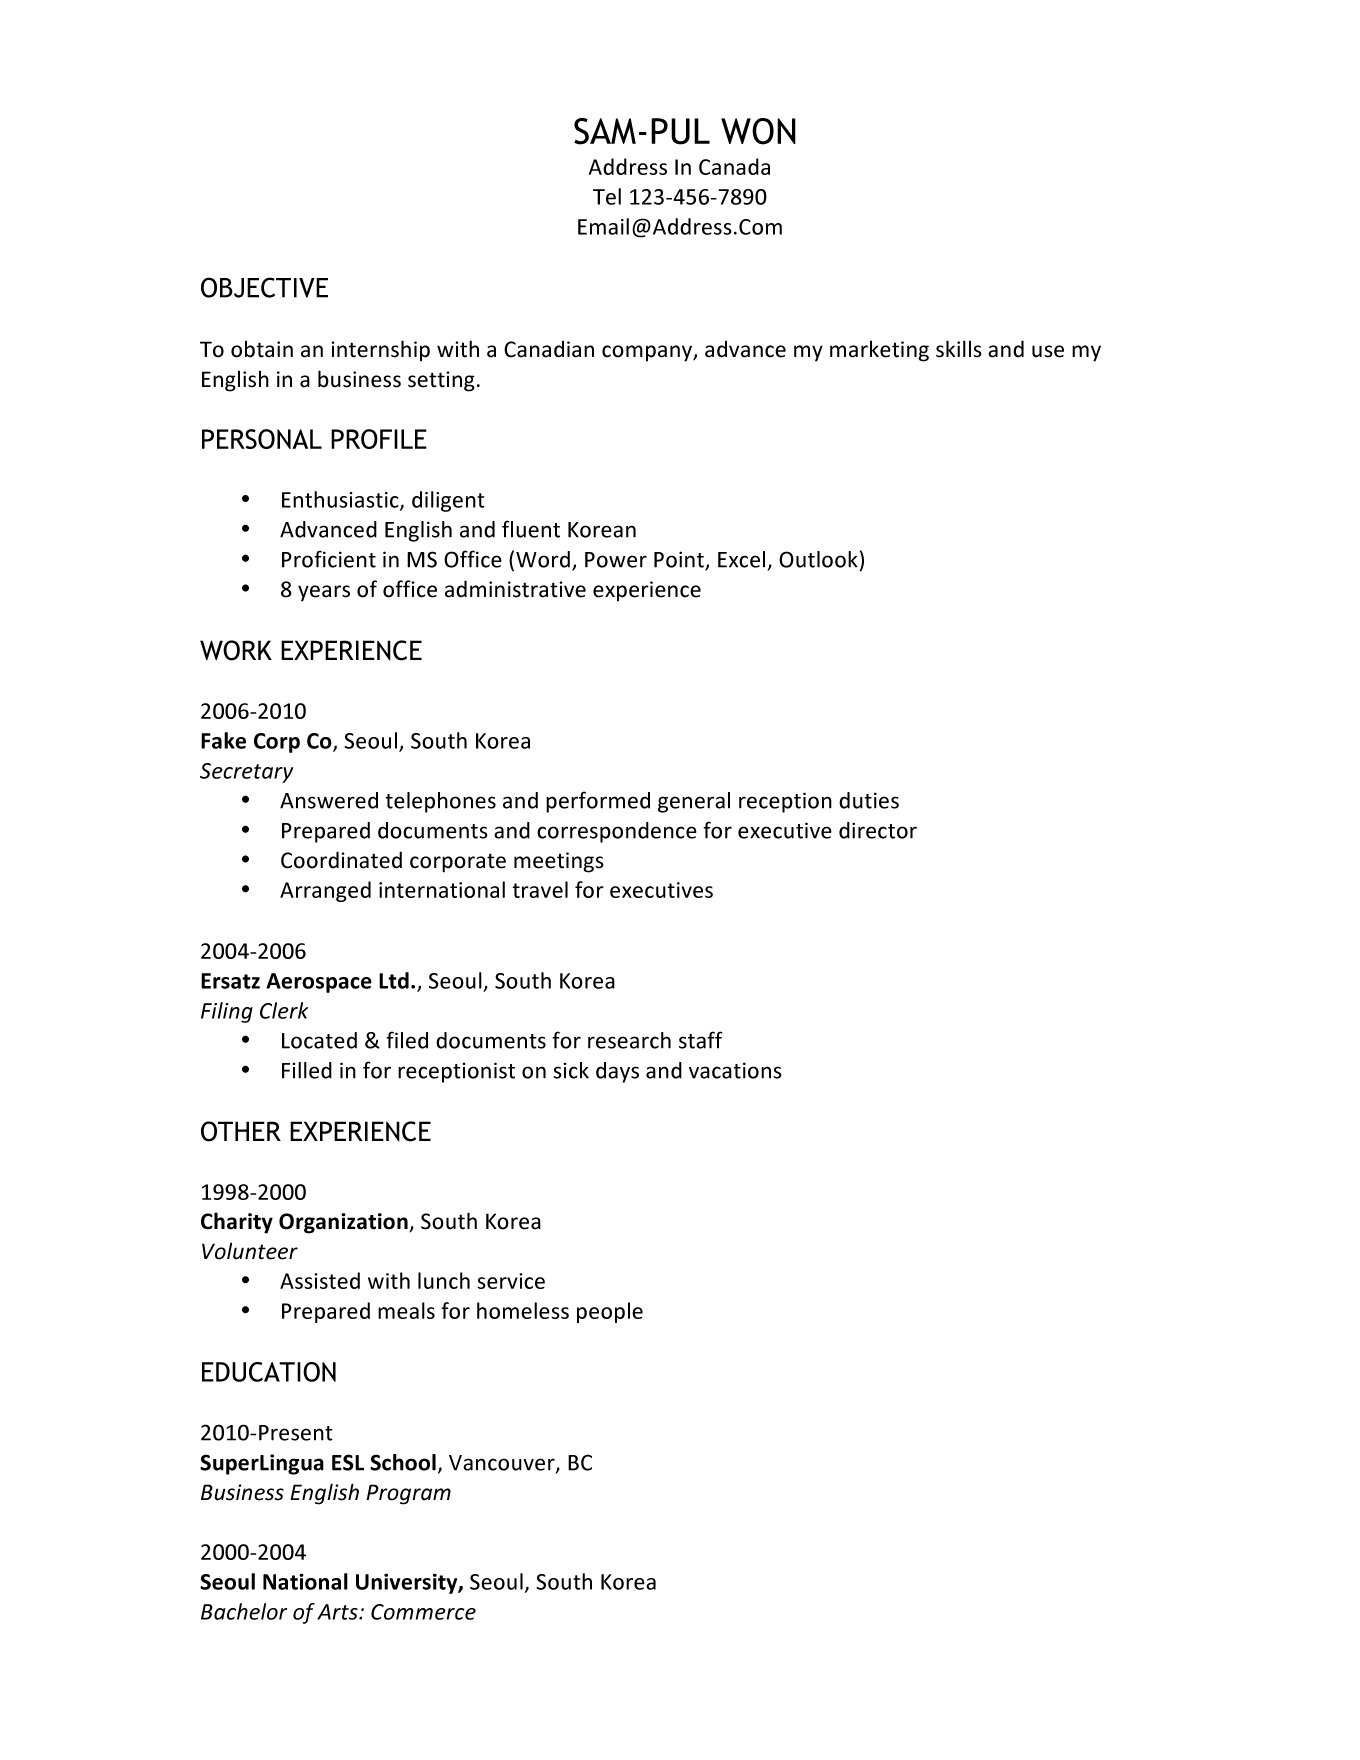 legal internship resume objective examples professional resume legal internship resume objective examples legal resume samples and tips for an effective resume resume examples